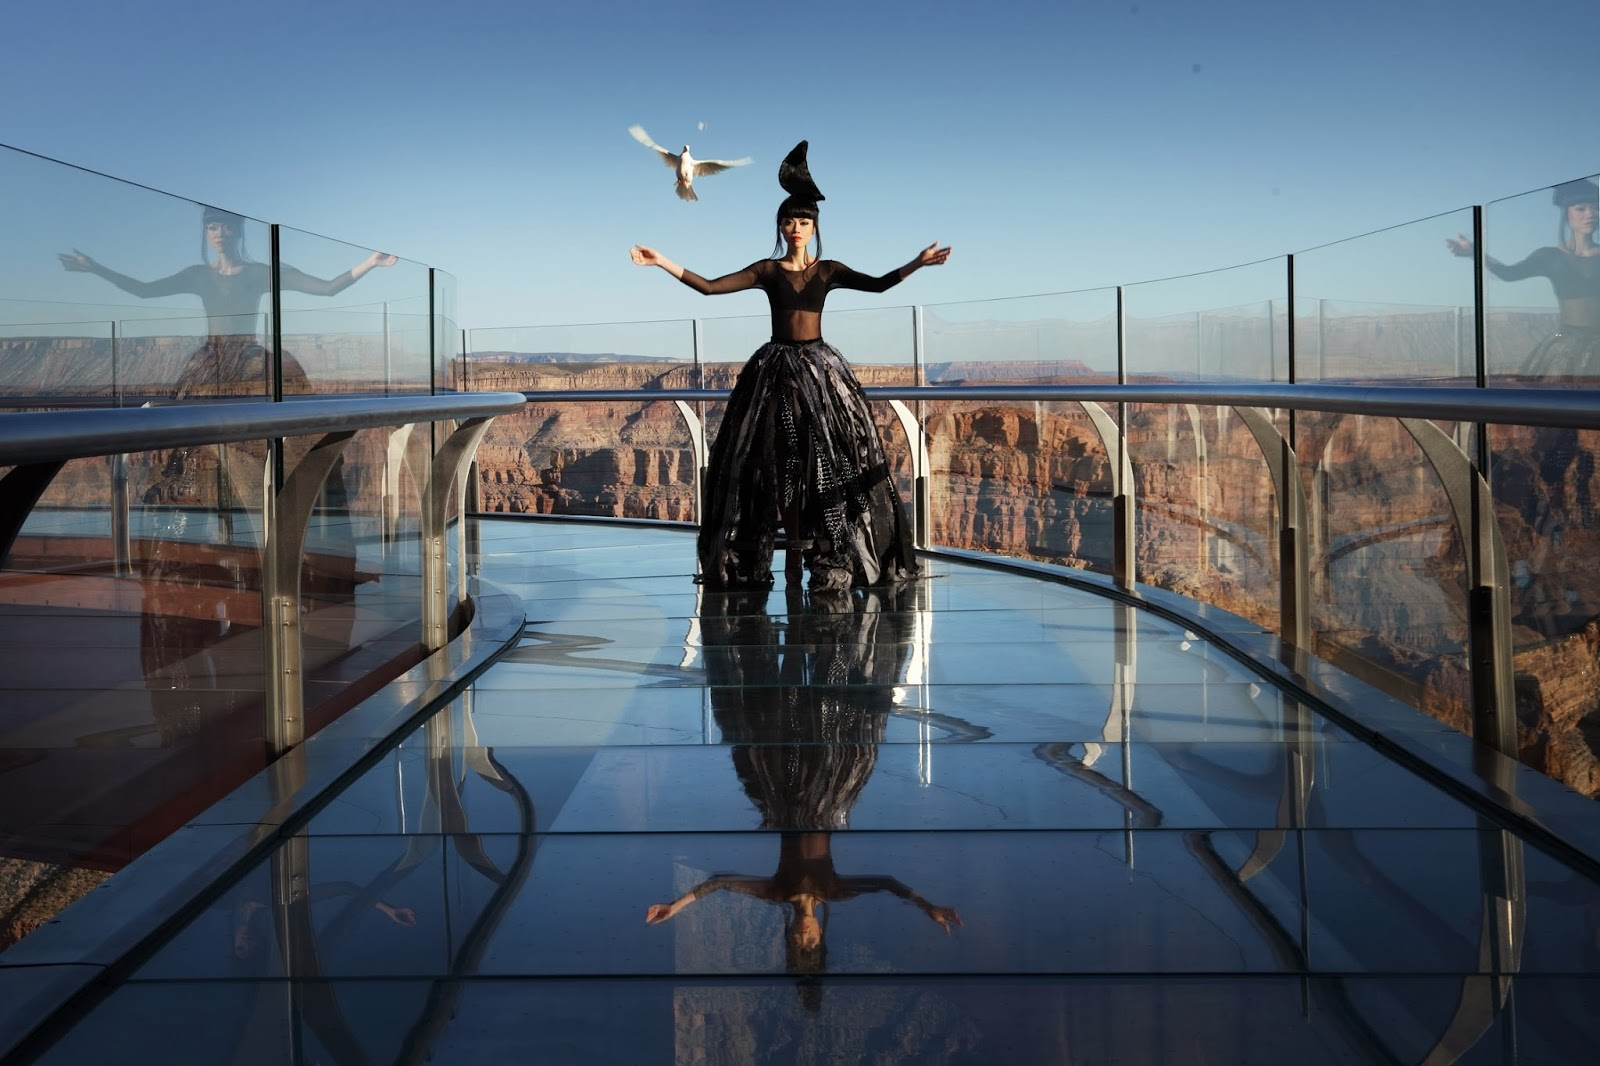 World's highest fashion show with a pinch of adrenaline